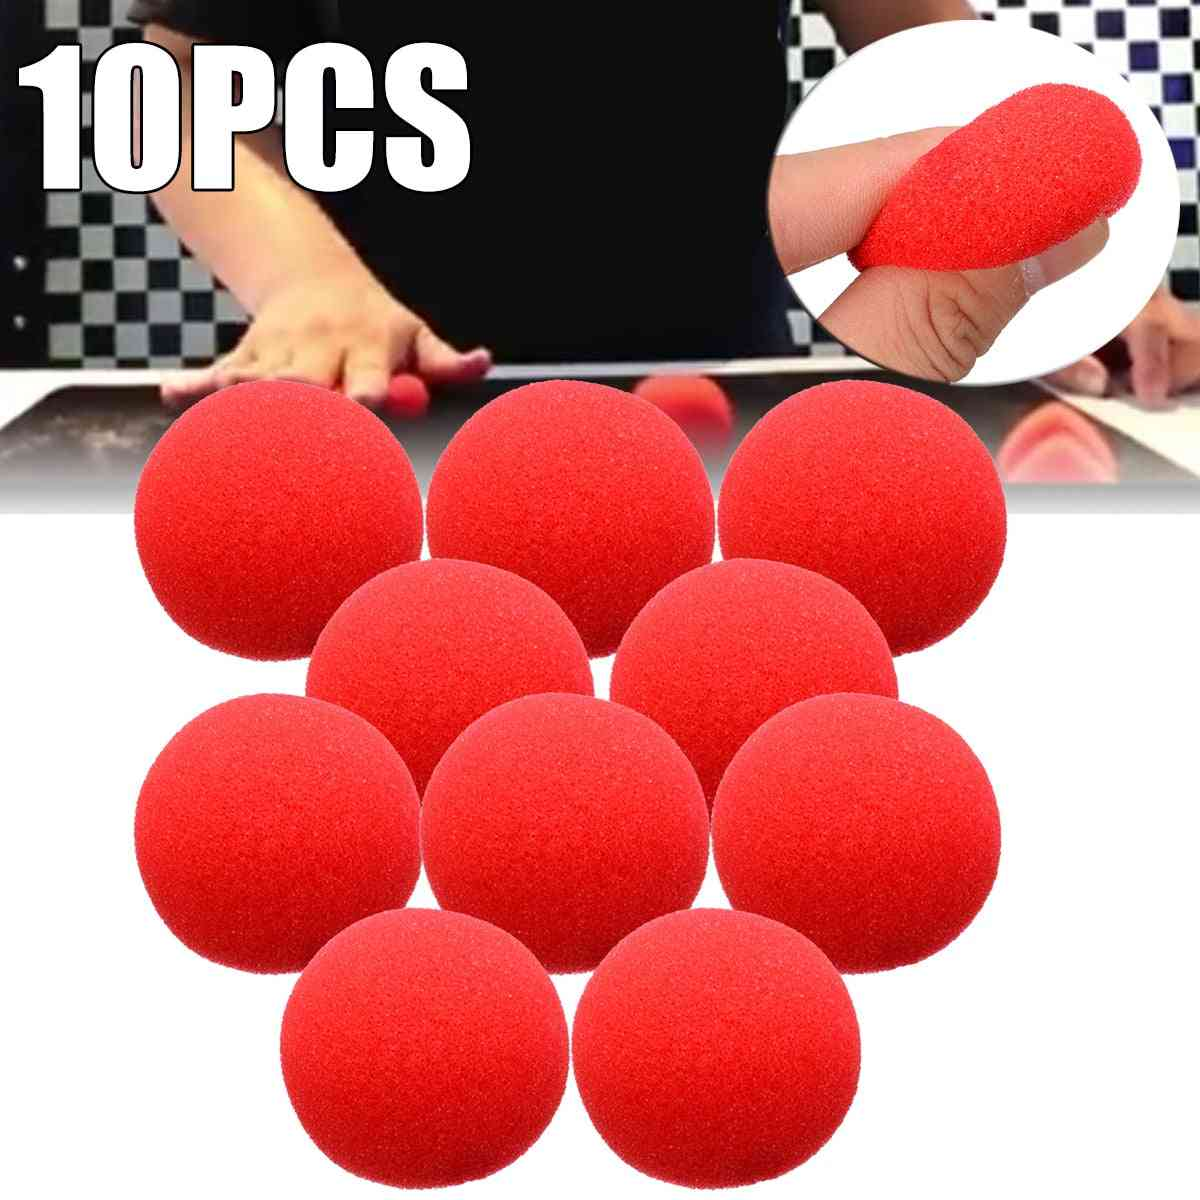 Adorable Red Ball, Super Soft Sponge Balls For Magic Party Stage Trick, Prop Clown Nose